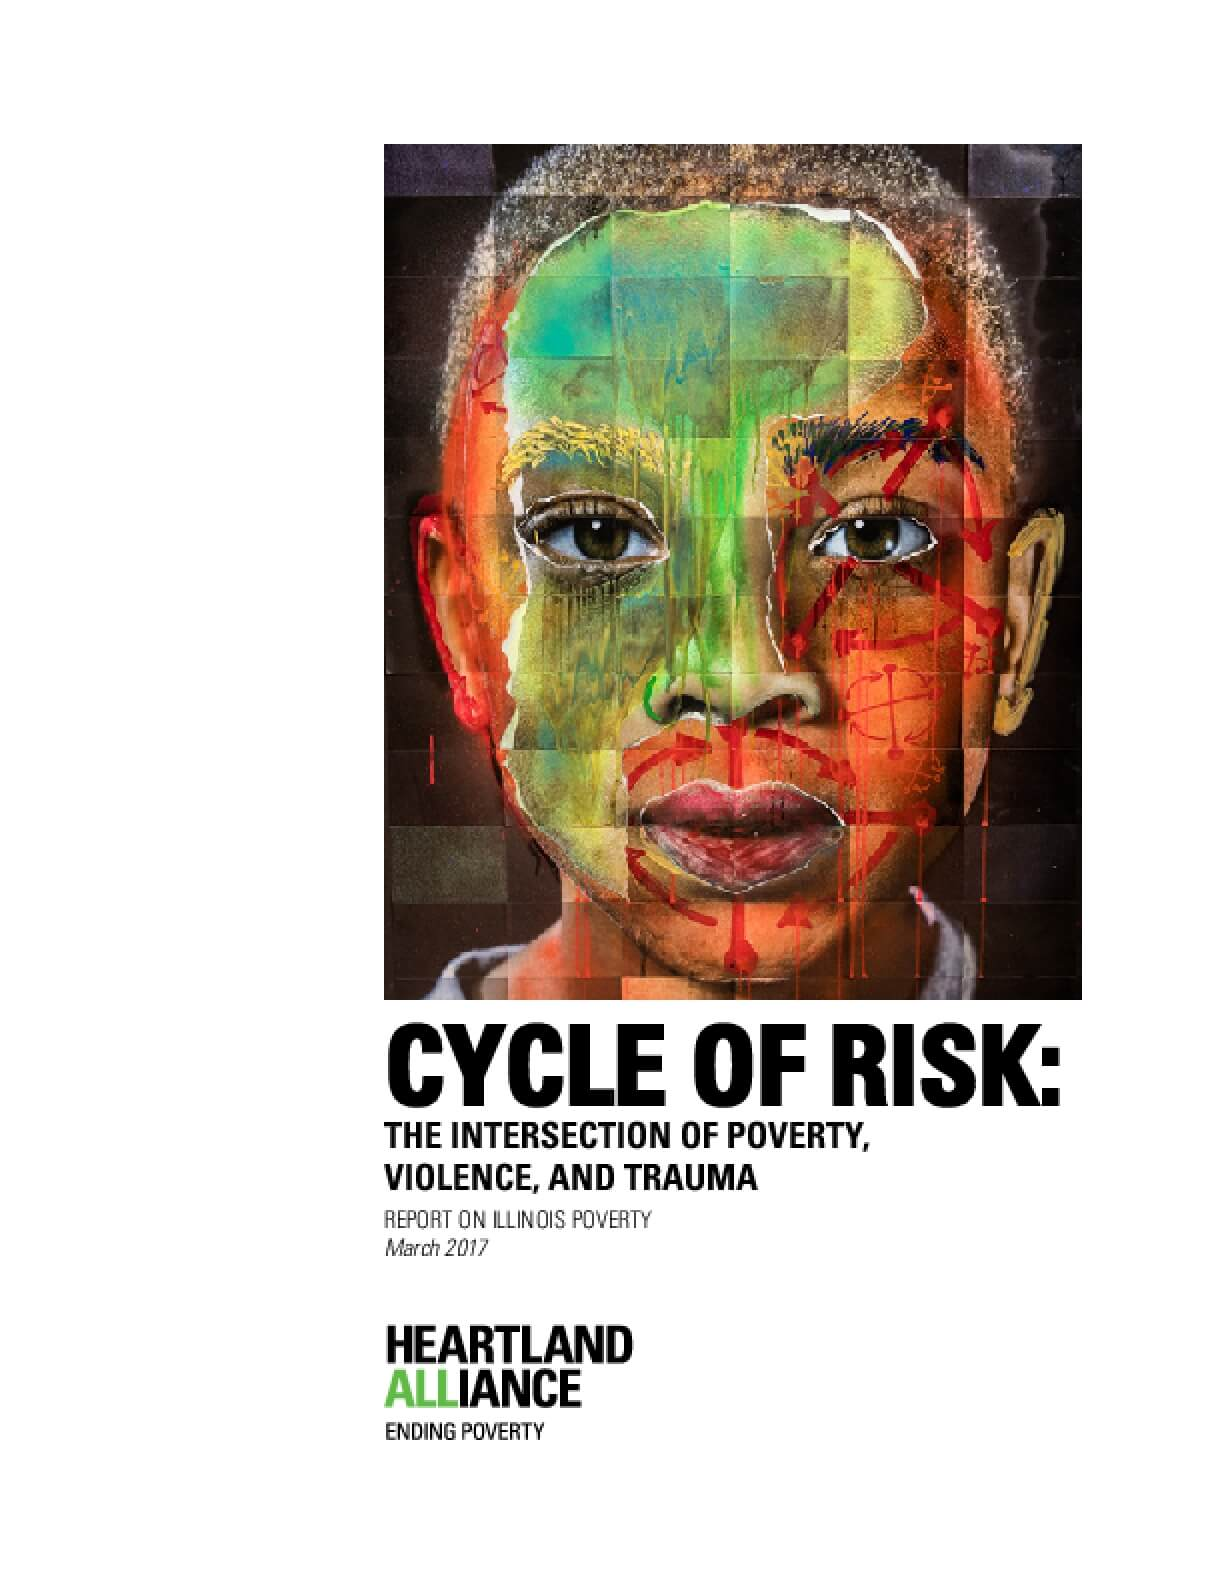 Cycle of Risk: The Intersection of Poverty, Violence, and Trauma